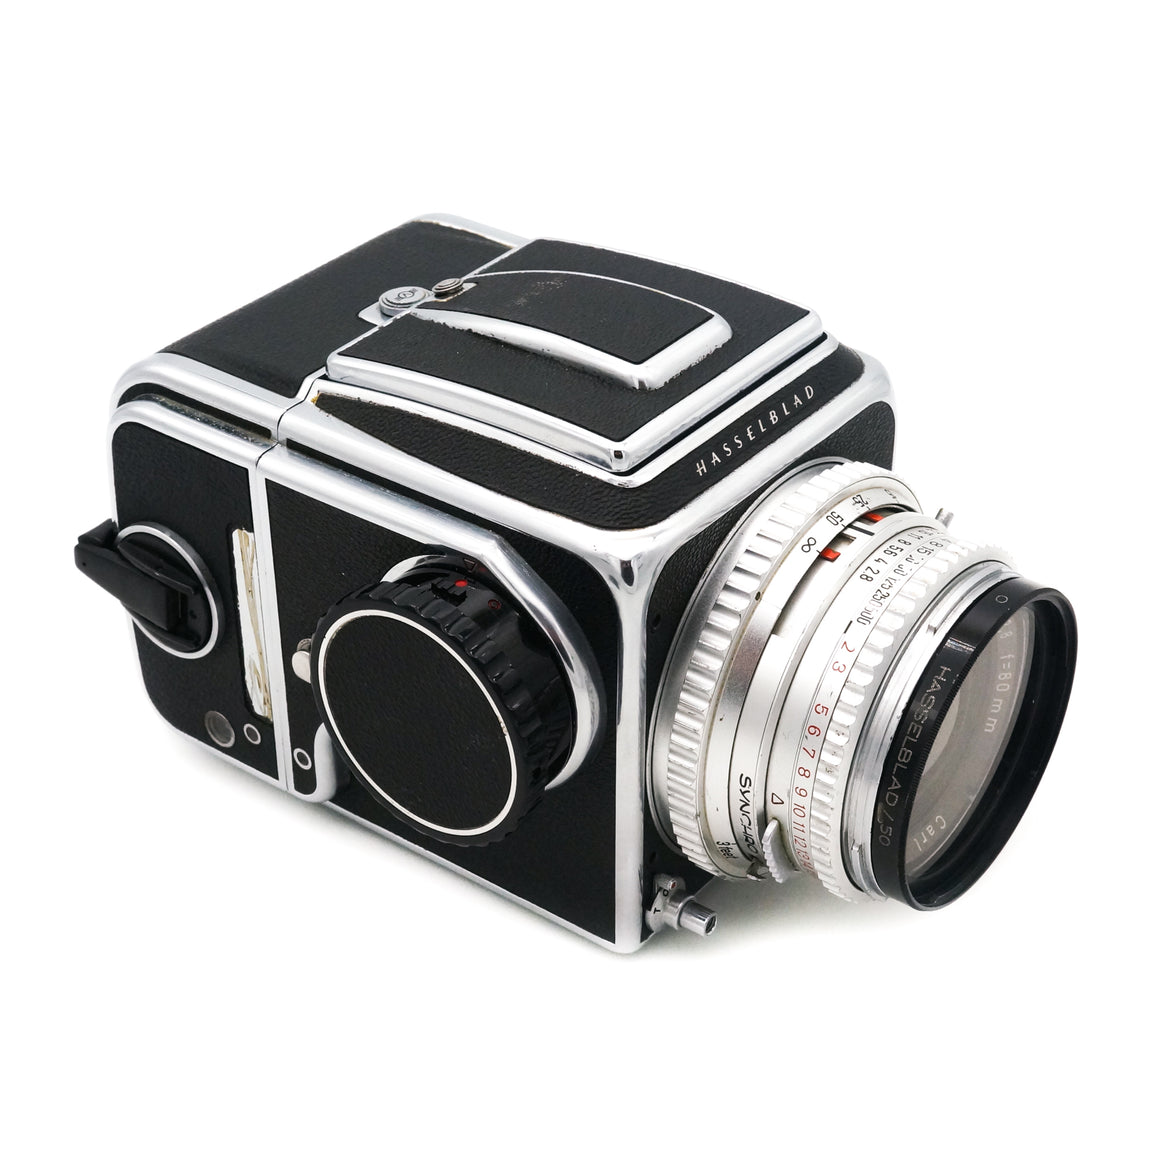 Hasselblad 500 C with Carl Zeiss 80mm f/2.8 Lens